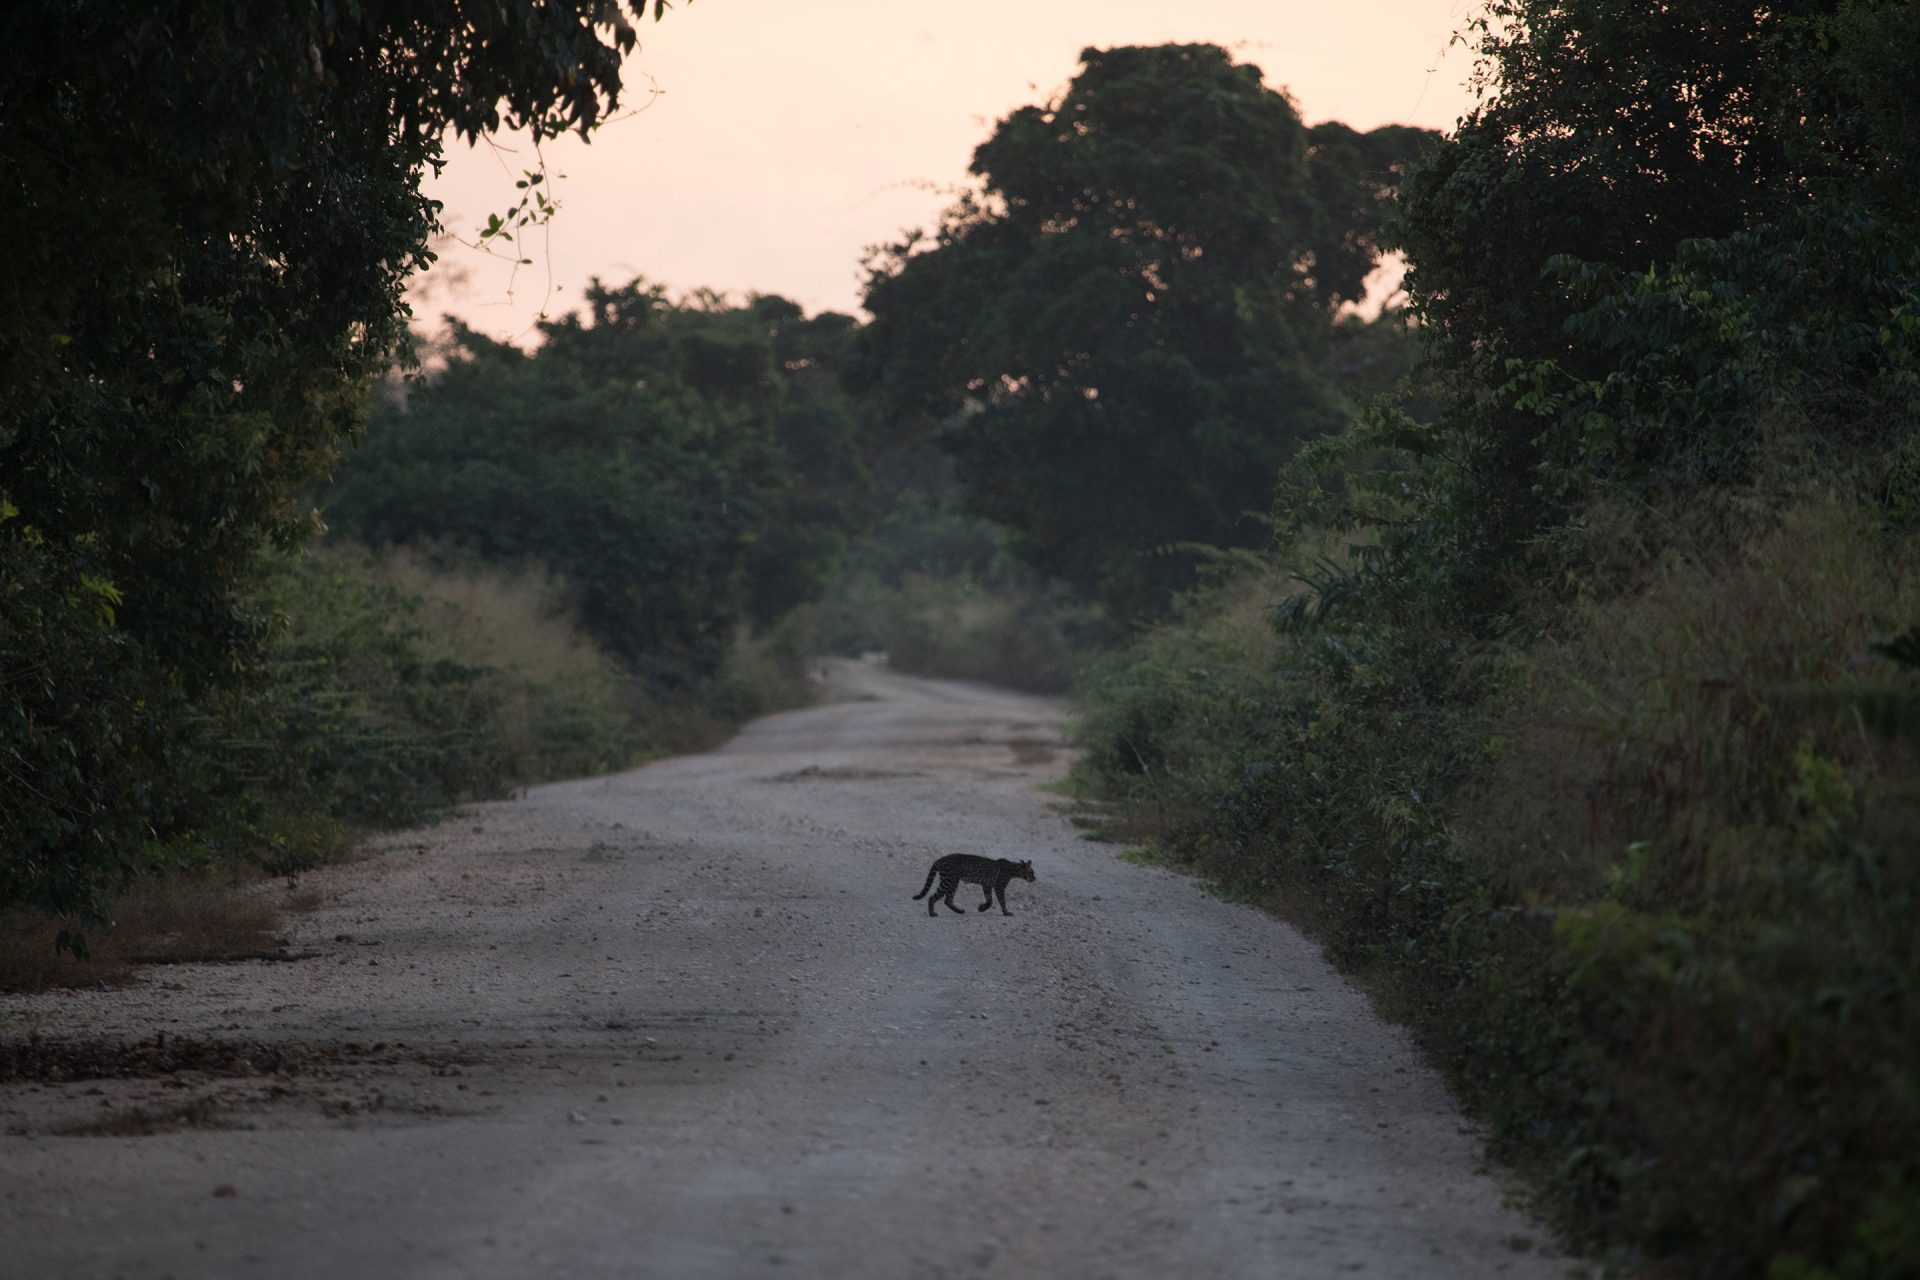 We encountered Ocelot crossing the road up to five times while birdwatching.